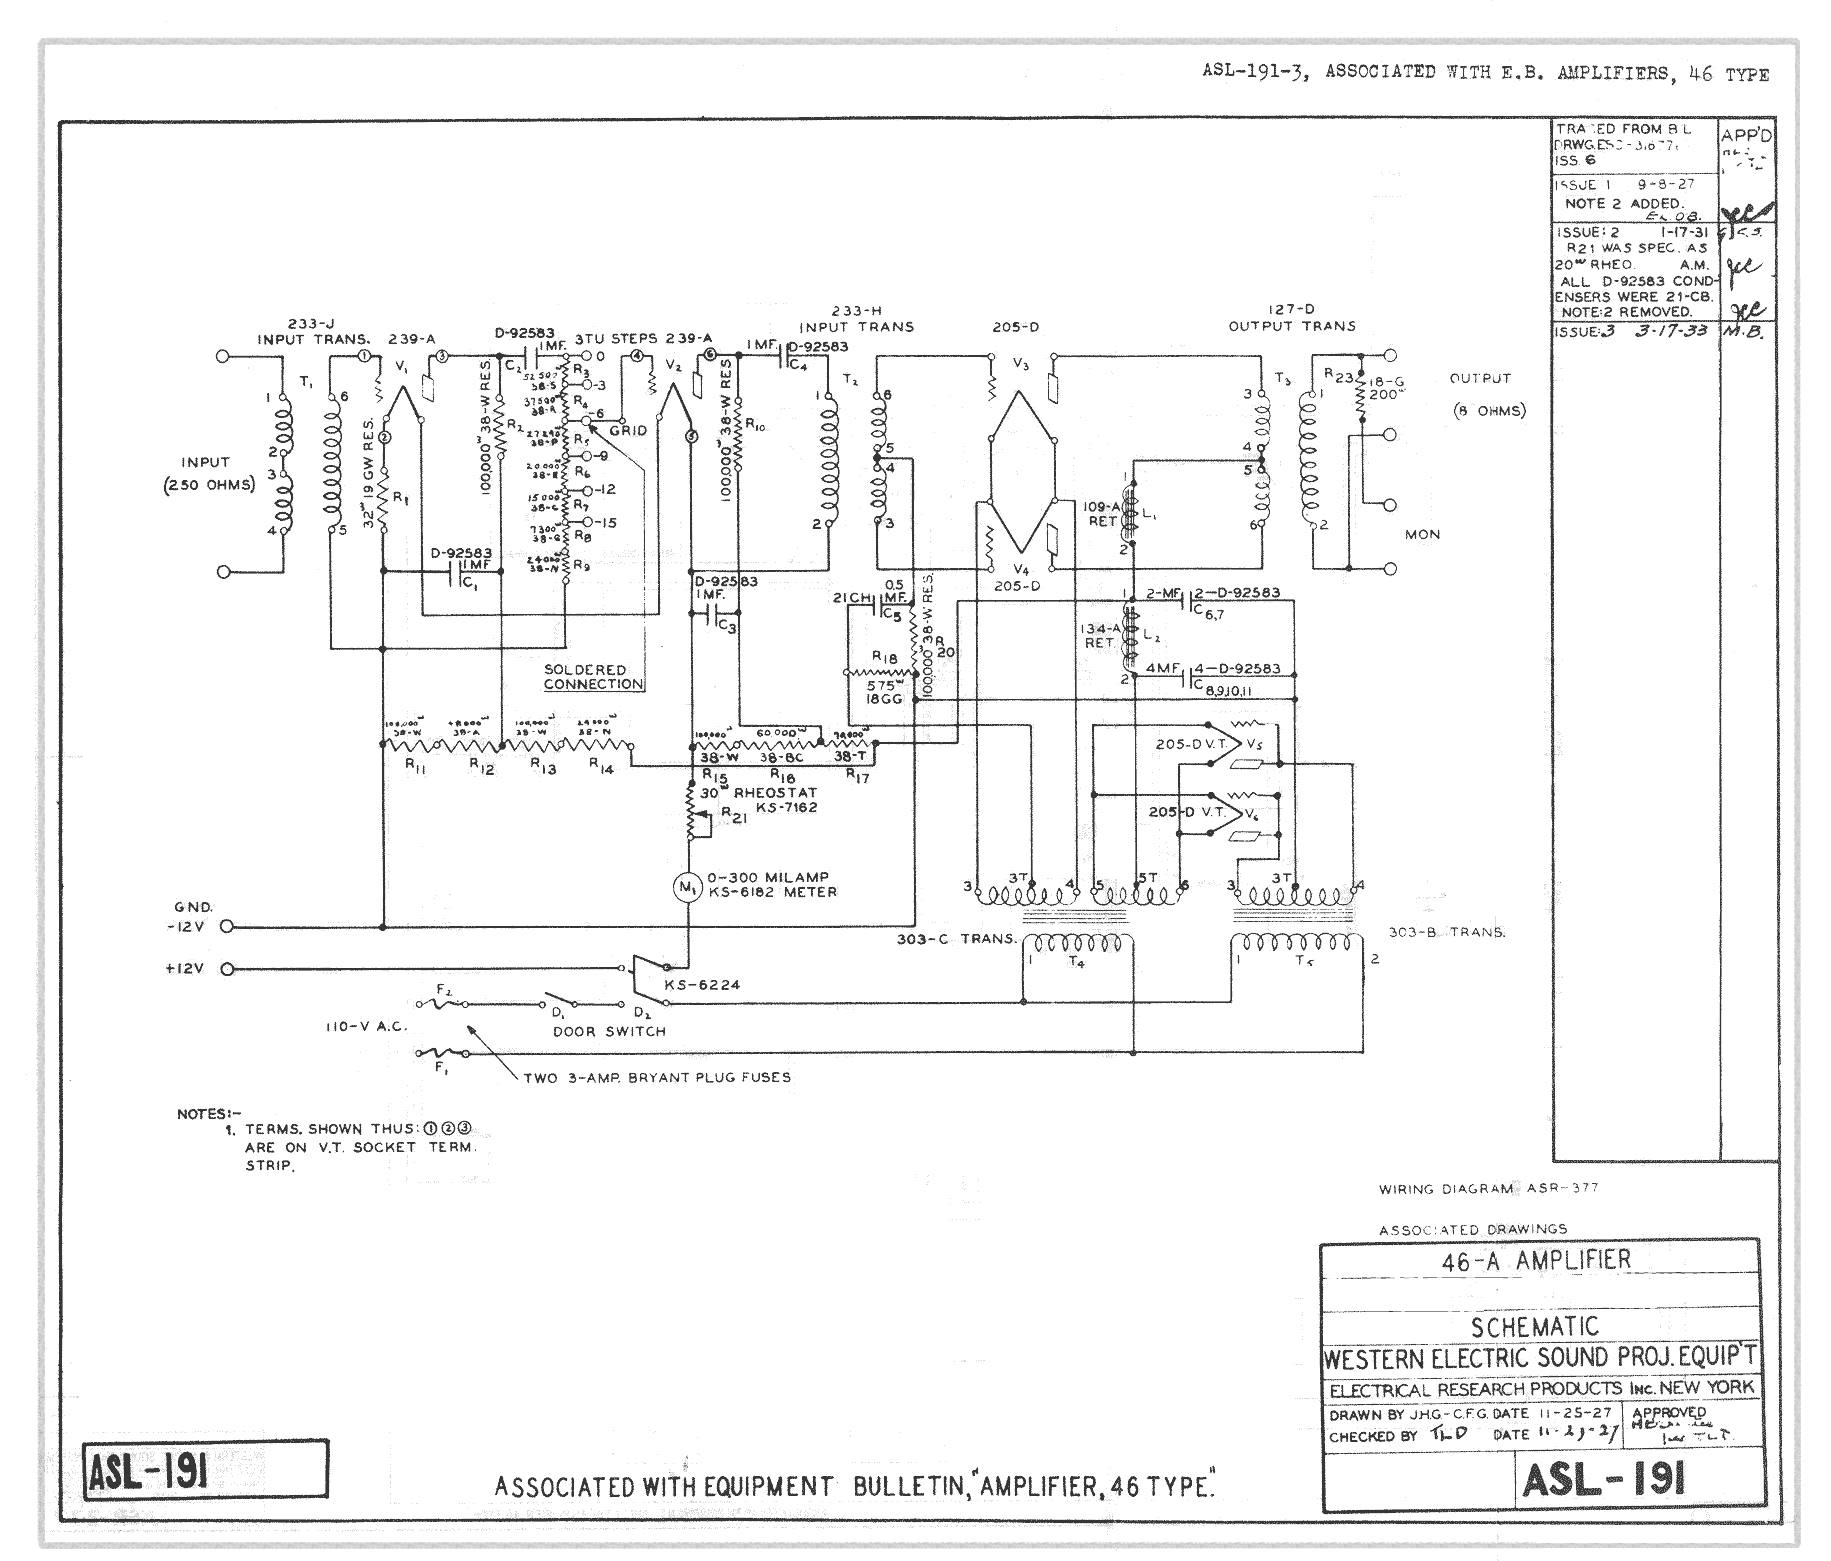 Western Electric 46-A, original schematic